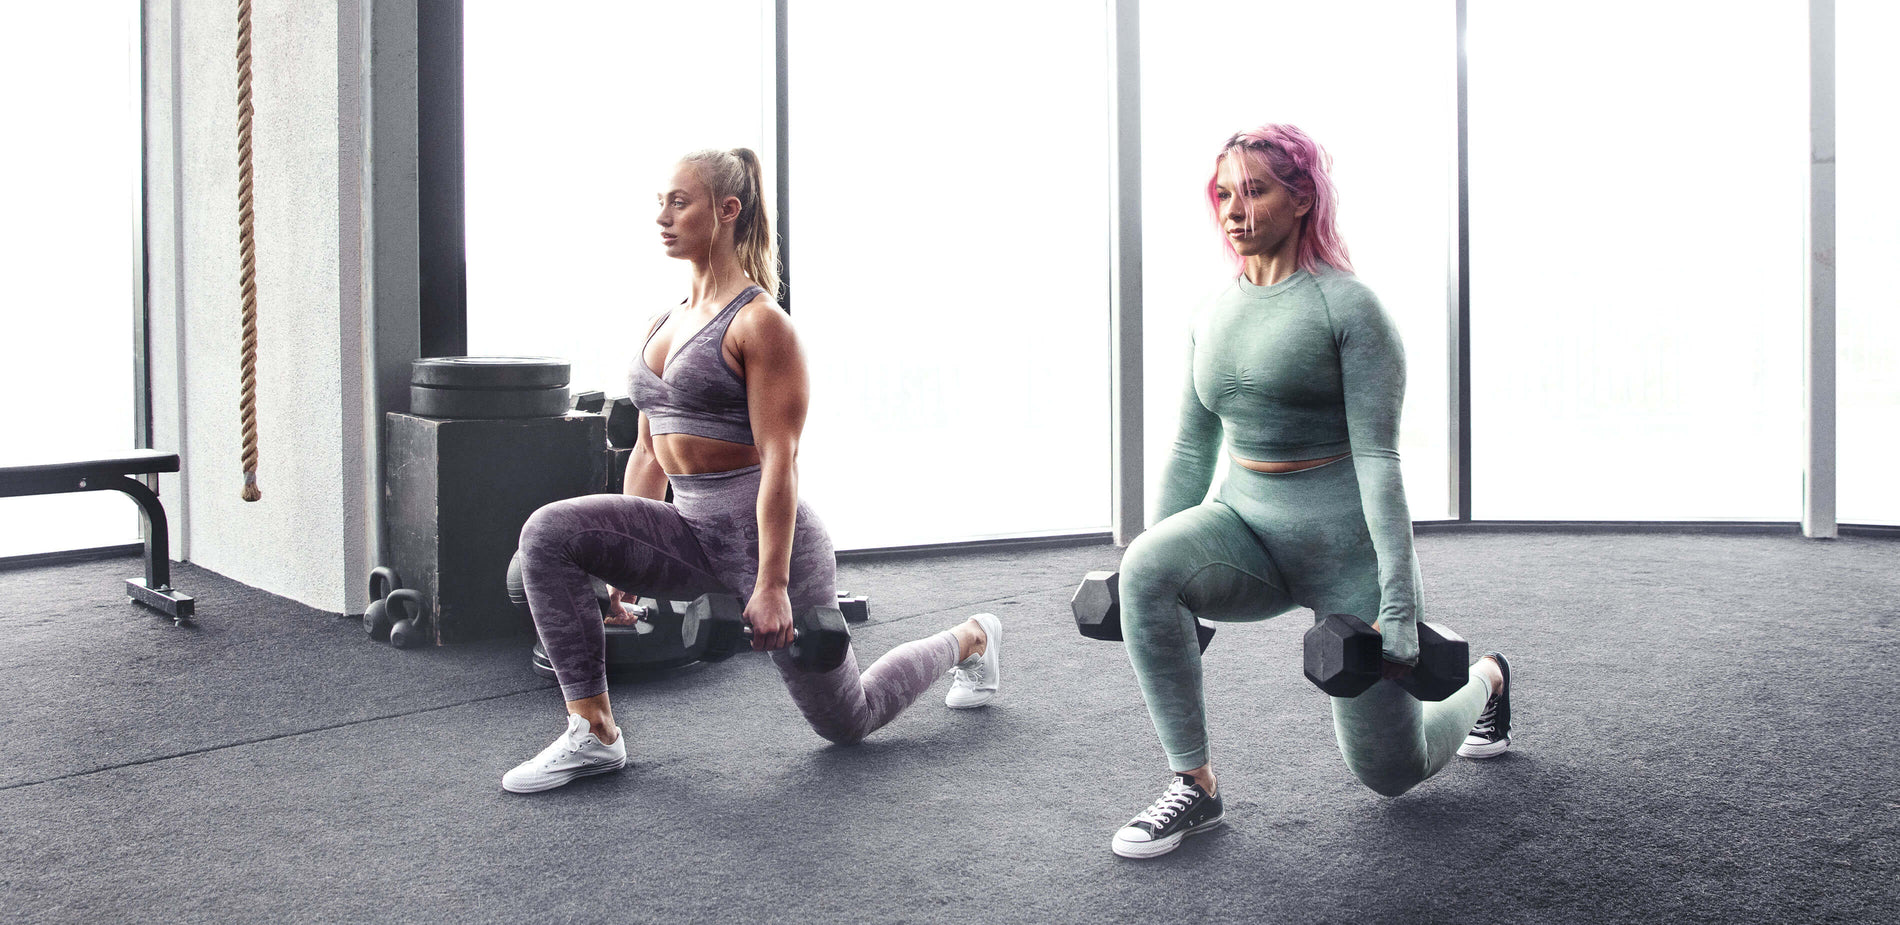 Two female Gymshark athletes lunging in a bright naturally lit gym wearing the new Camo collection.